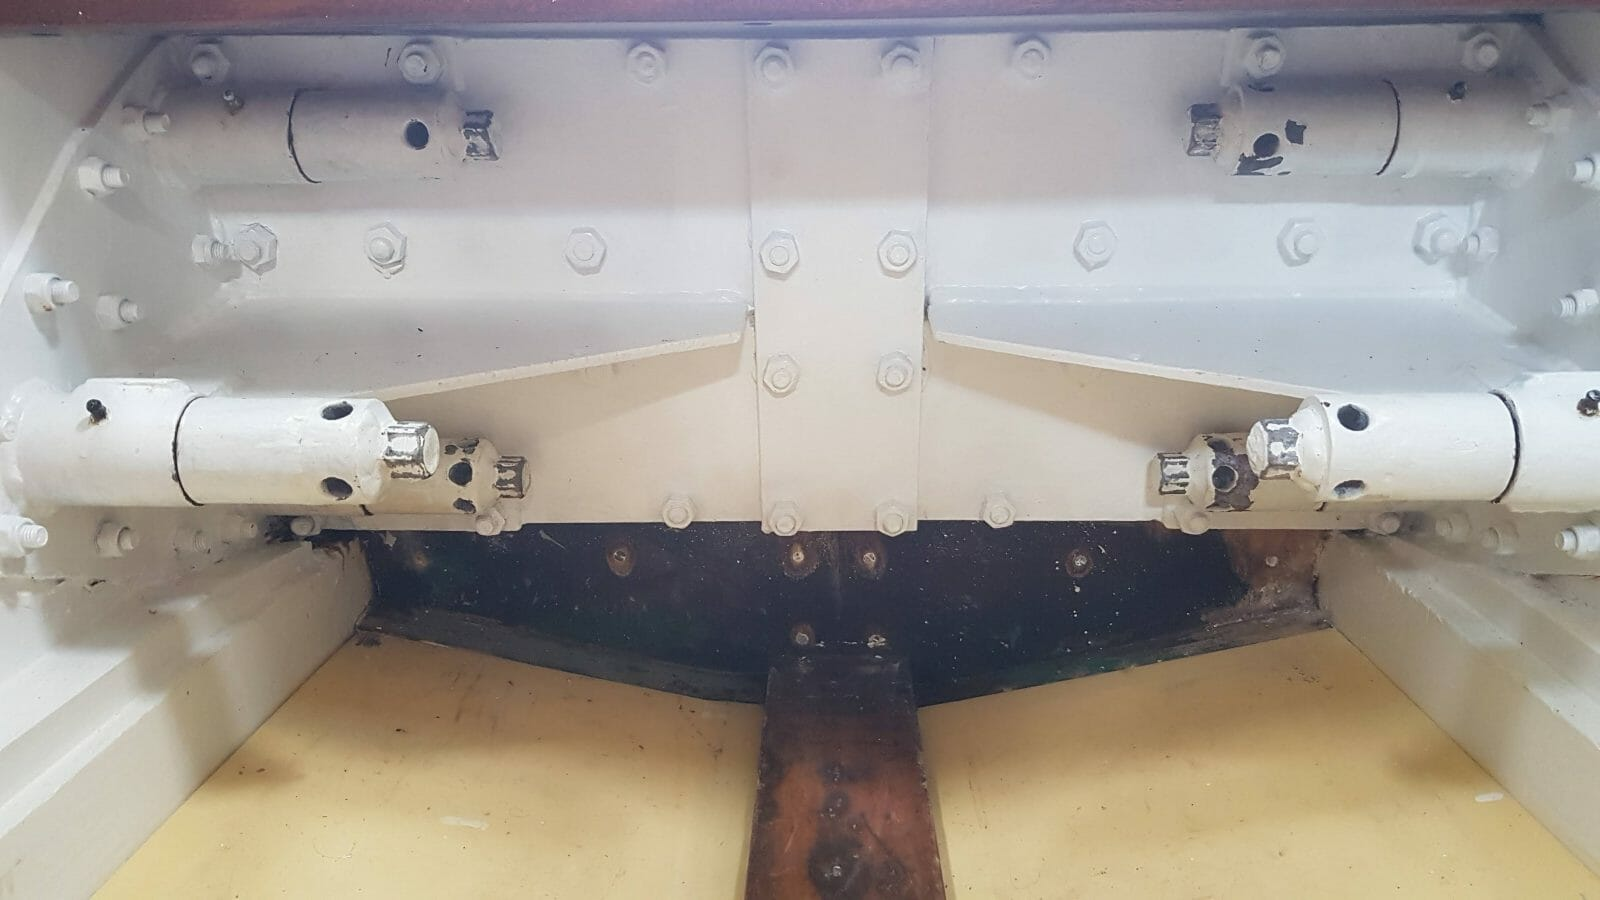 Keel steelwork is in good condition - the stuff you can't see too!